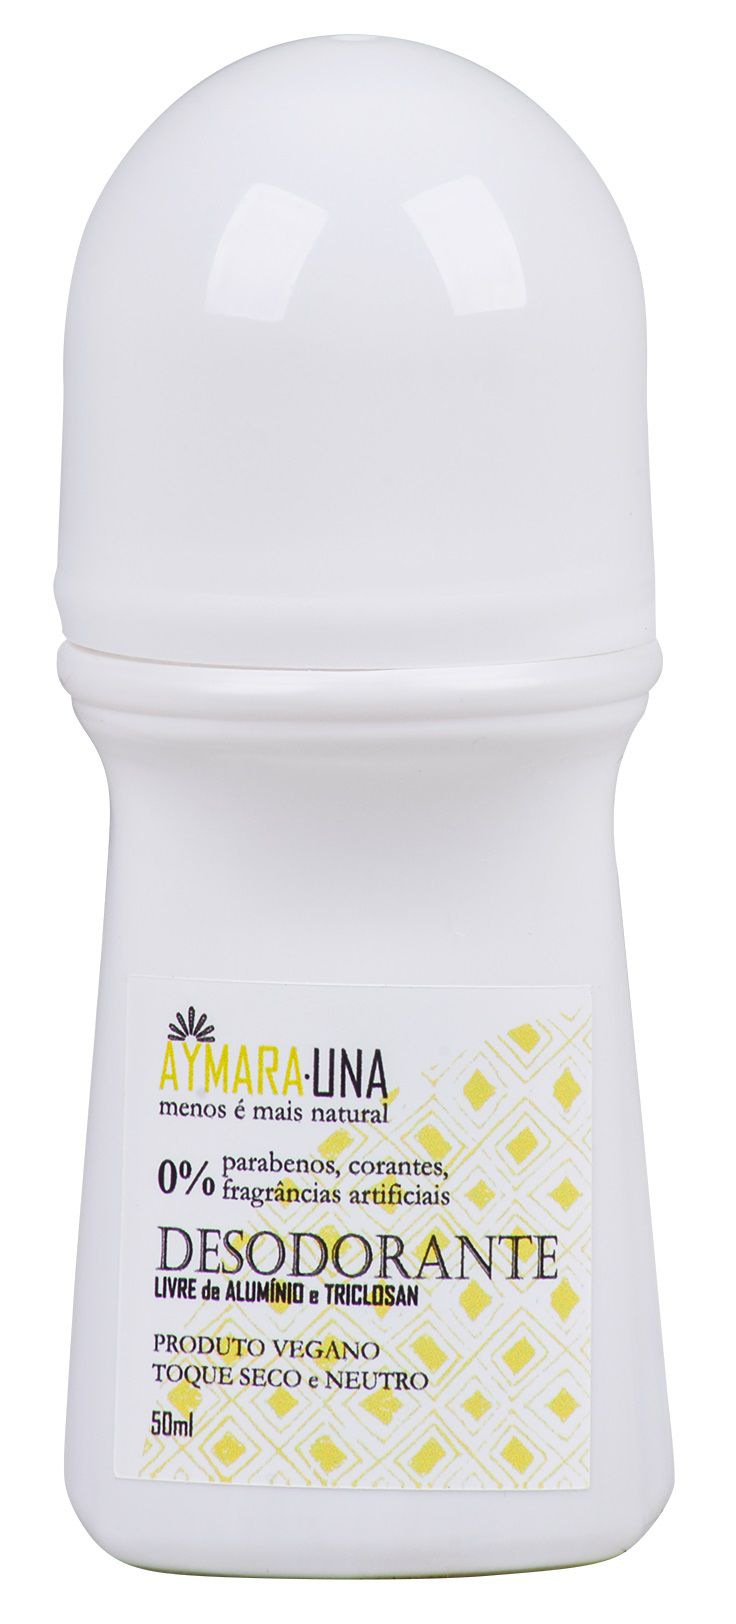 Desodorante Vegano Roll-on toque seco (sem alumínio) Aymanauna -  50ml